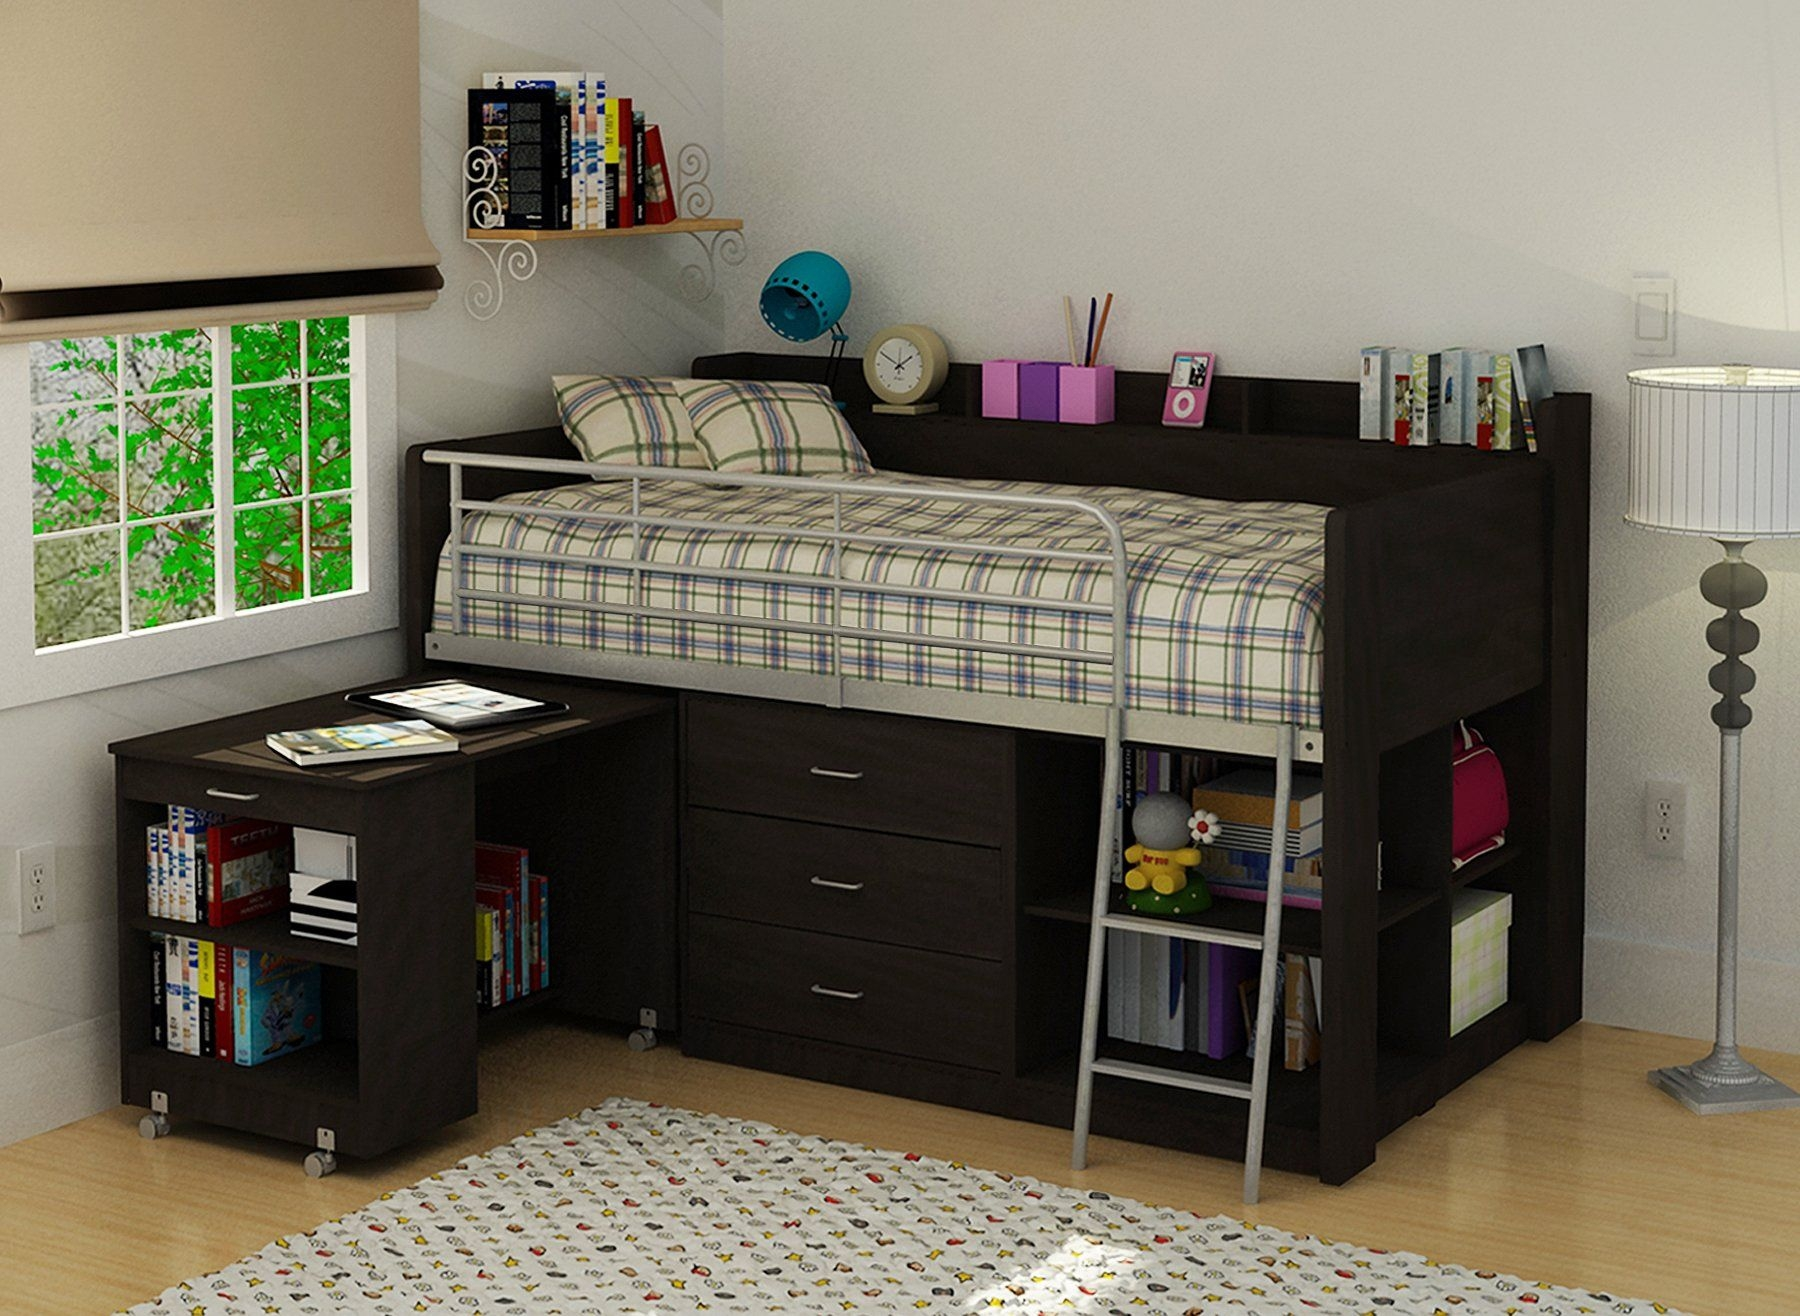 Lovely Bed With Study Table Design